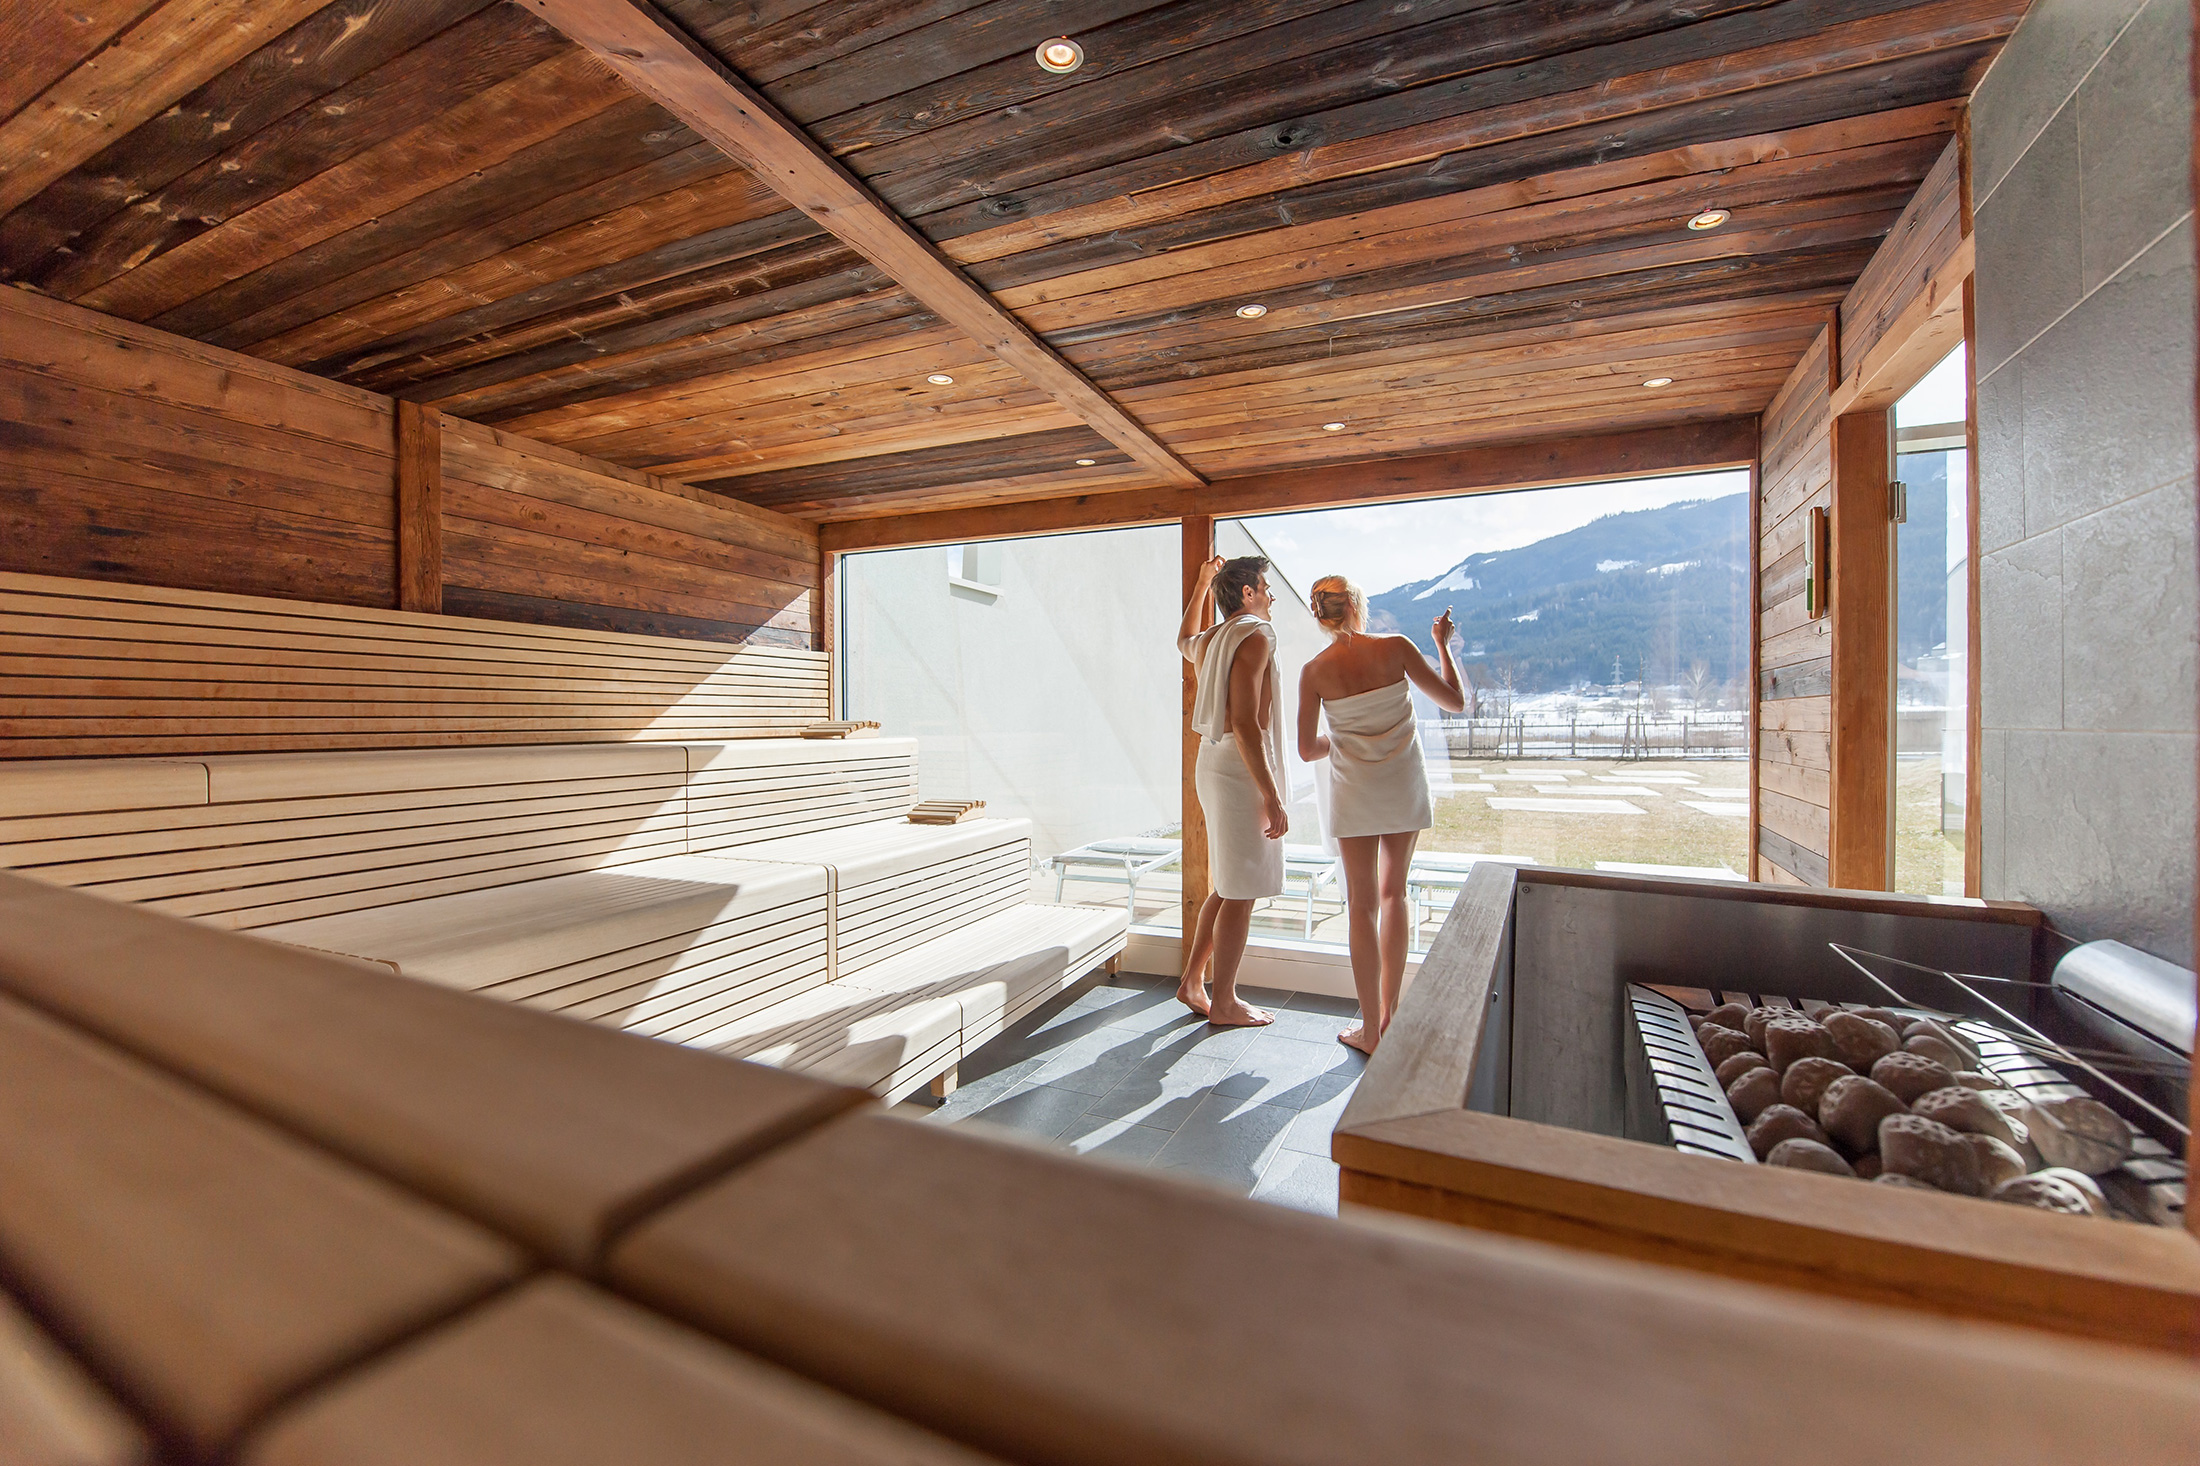 Amüsant Sauna Bilder Foto Von In The World Tauern Spa